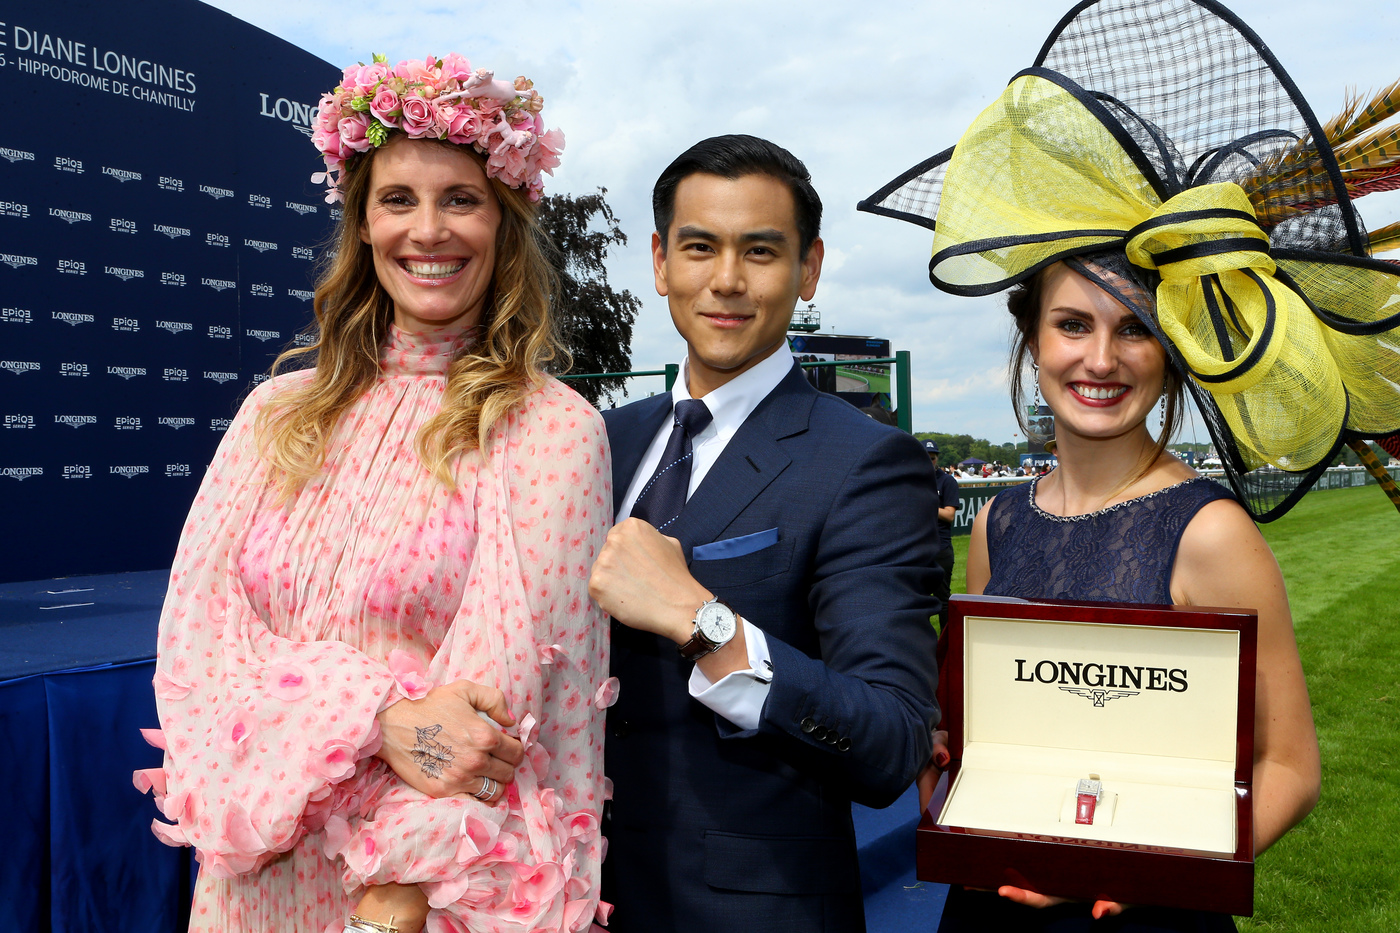 Longines Flat Racing Event: La Cressonnière is 2016 Prix de Diane Longines champion 12